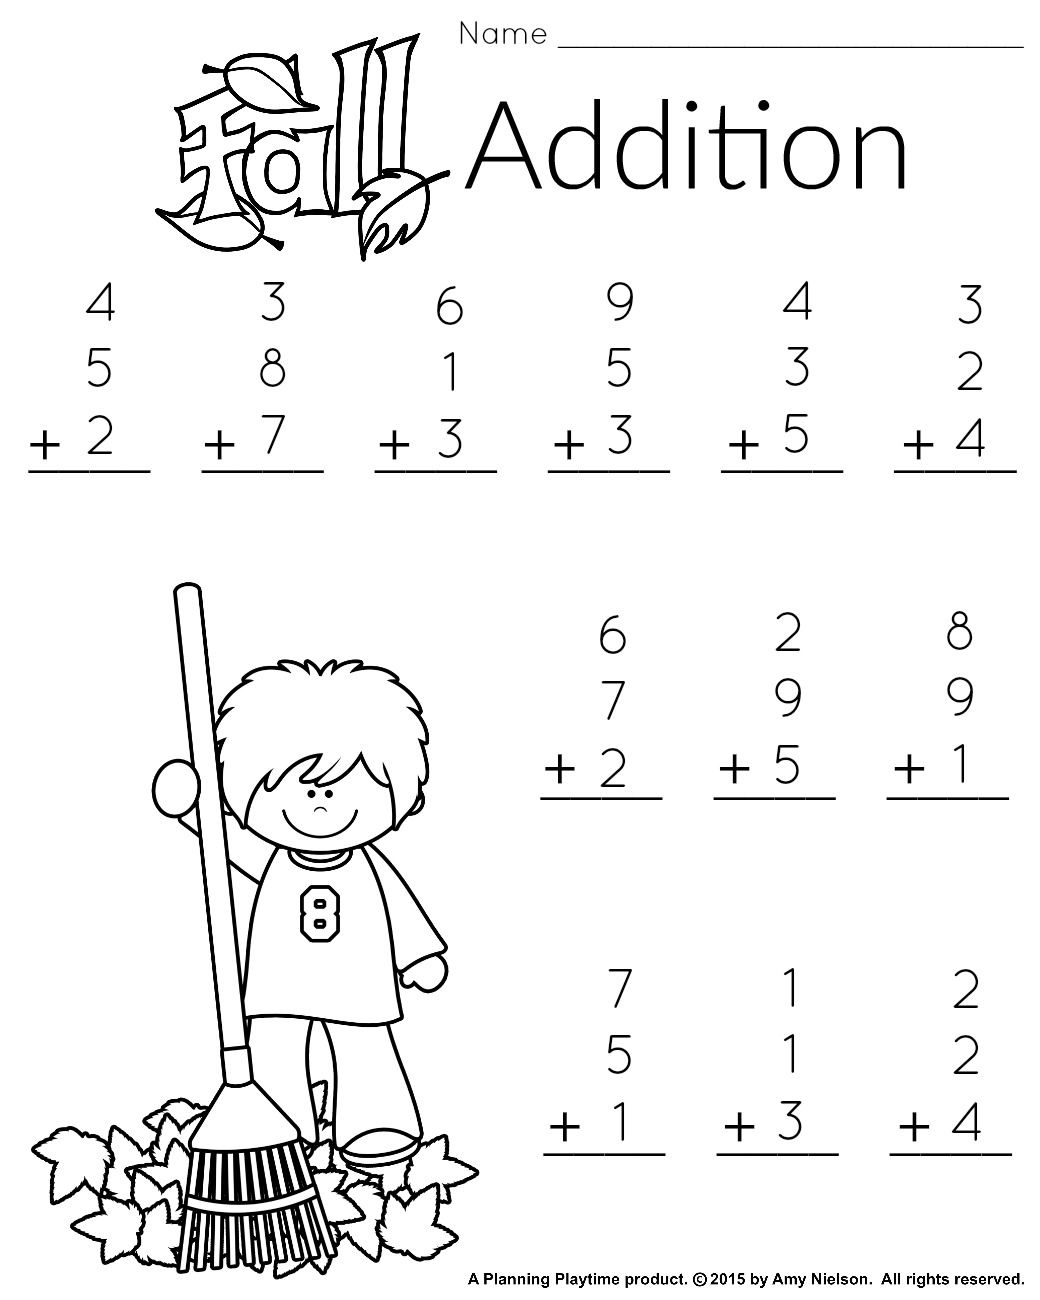 1st Grade Math and Literacy Worksheets with a Freebie! - Planning Playtime    Math addition worksheets [ 1300 x 1040 Pixel ]